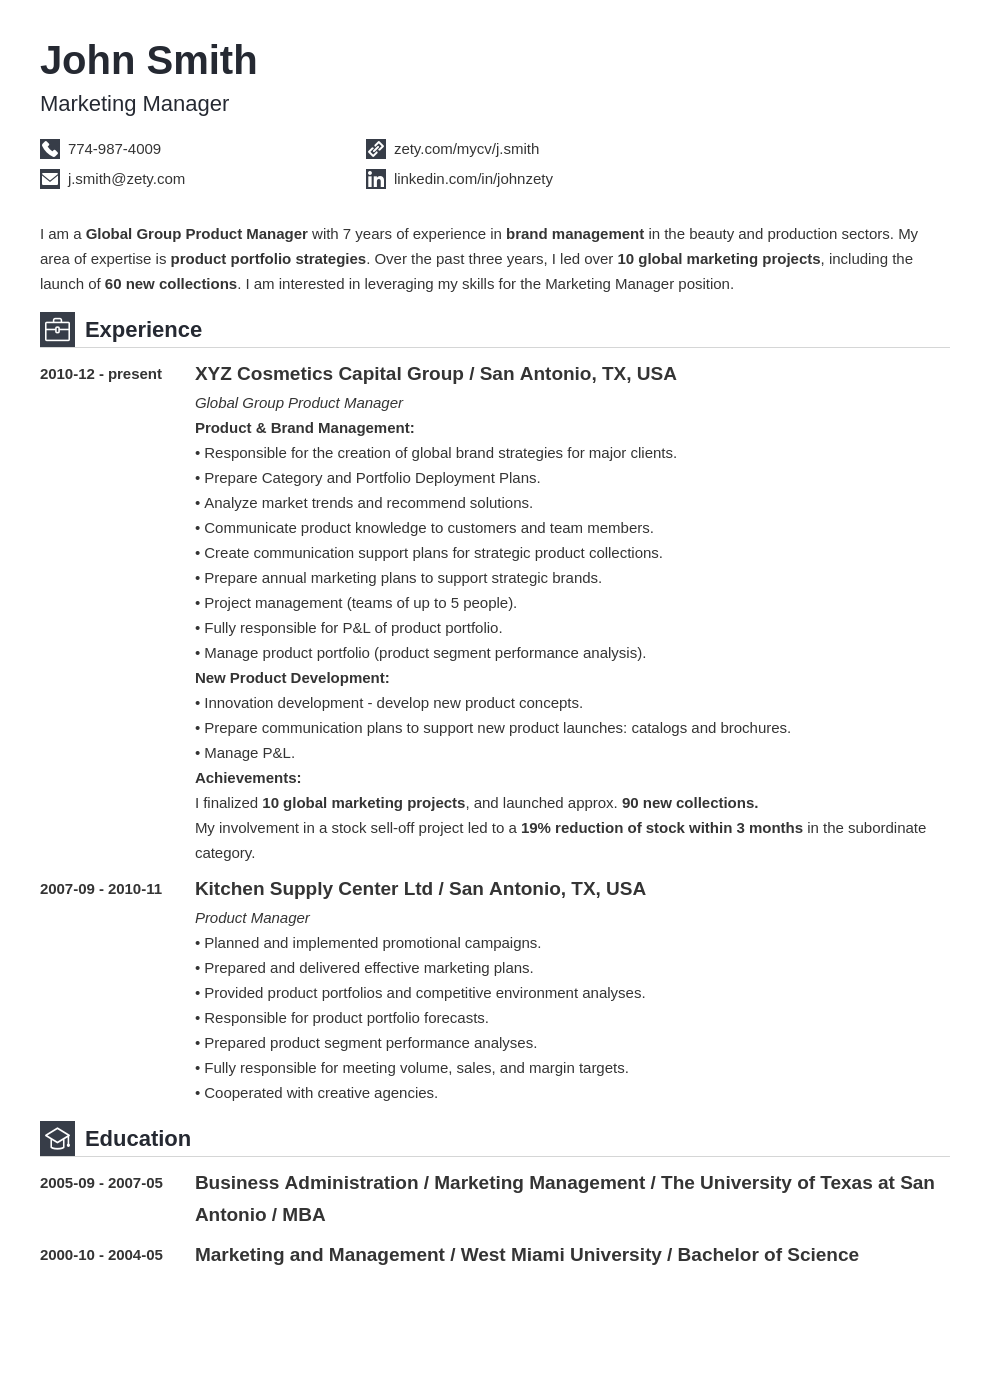 expected completion of degree on resume